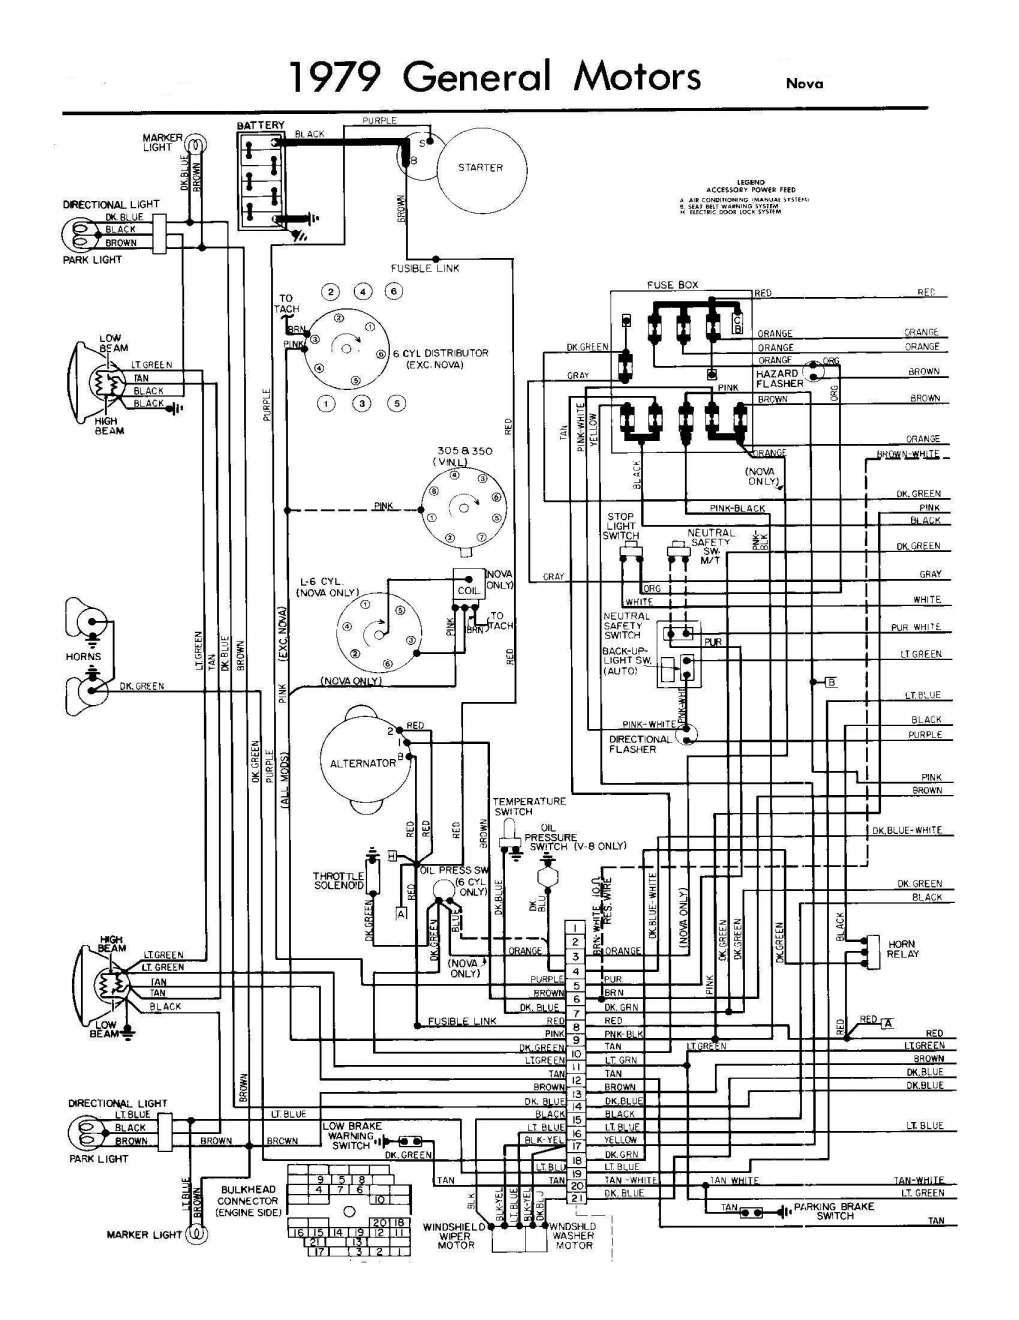 Chevrolet Truck Wiring Diagram For 1974 - Wiring Diagram Data camp-panel -  camp-panel.portorhoca.itcamp-panel.portorhoca.it